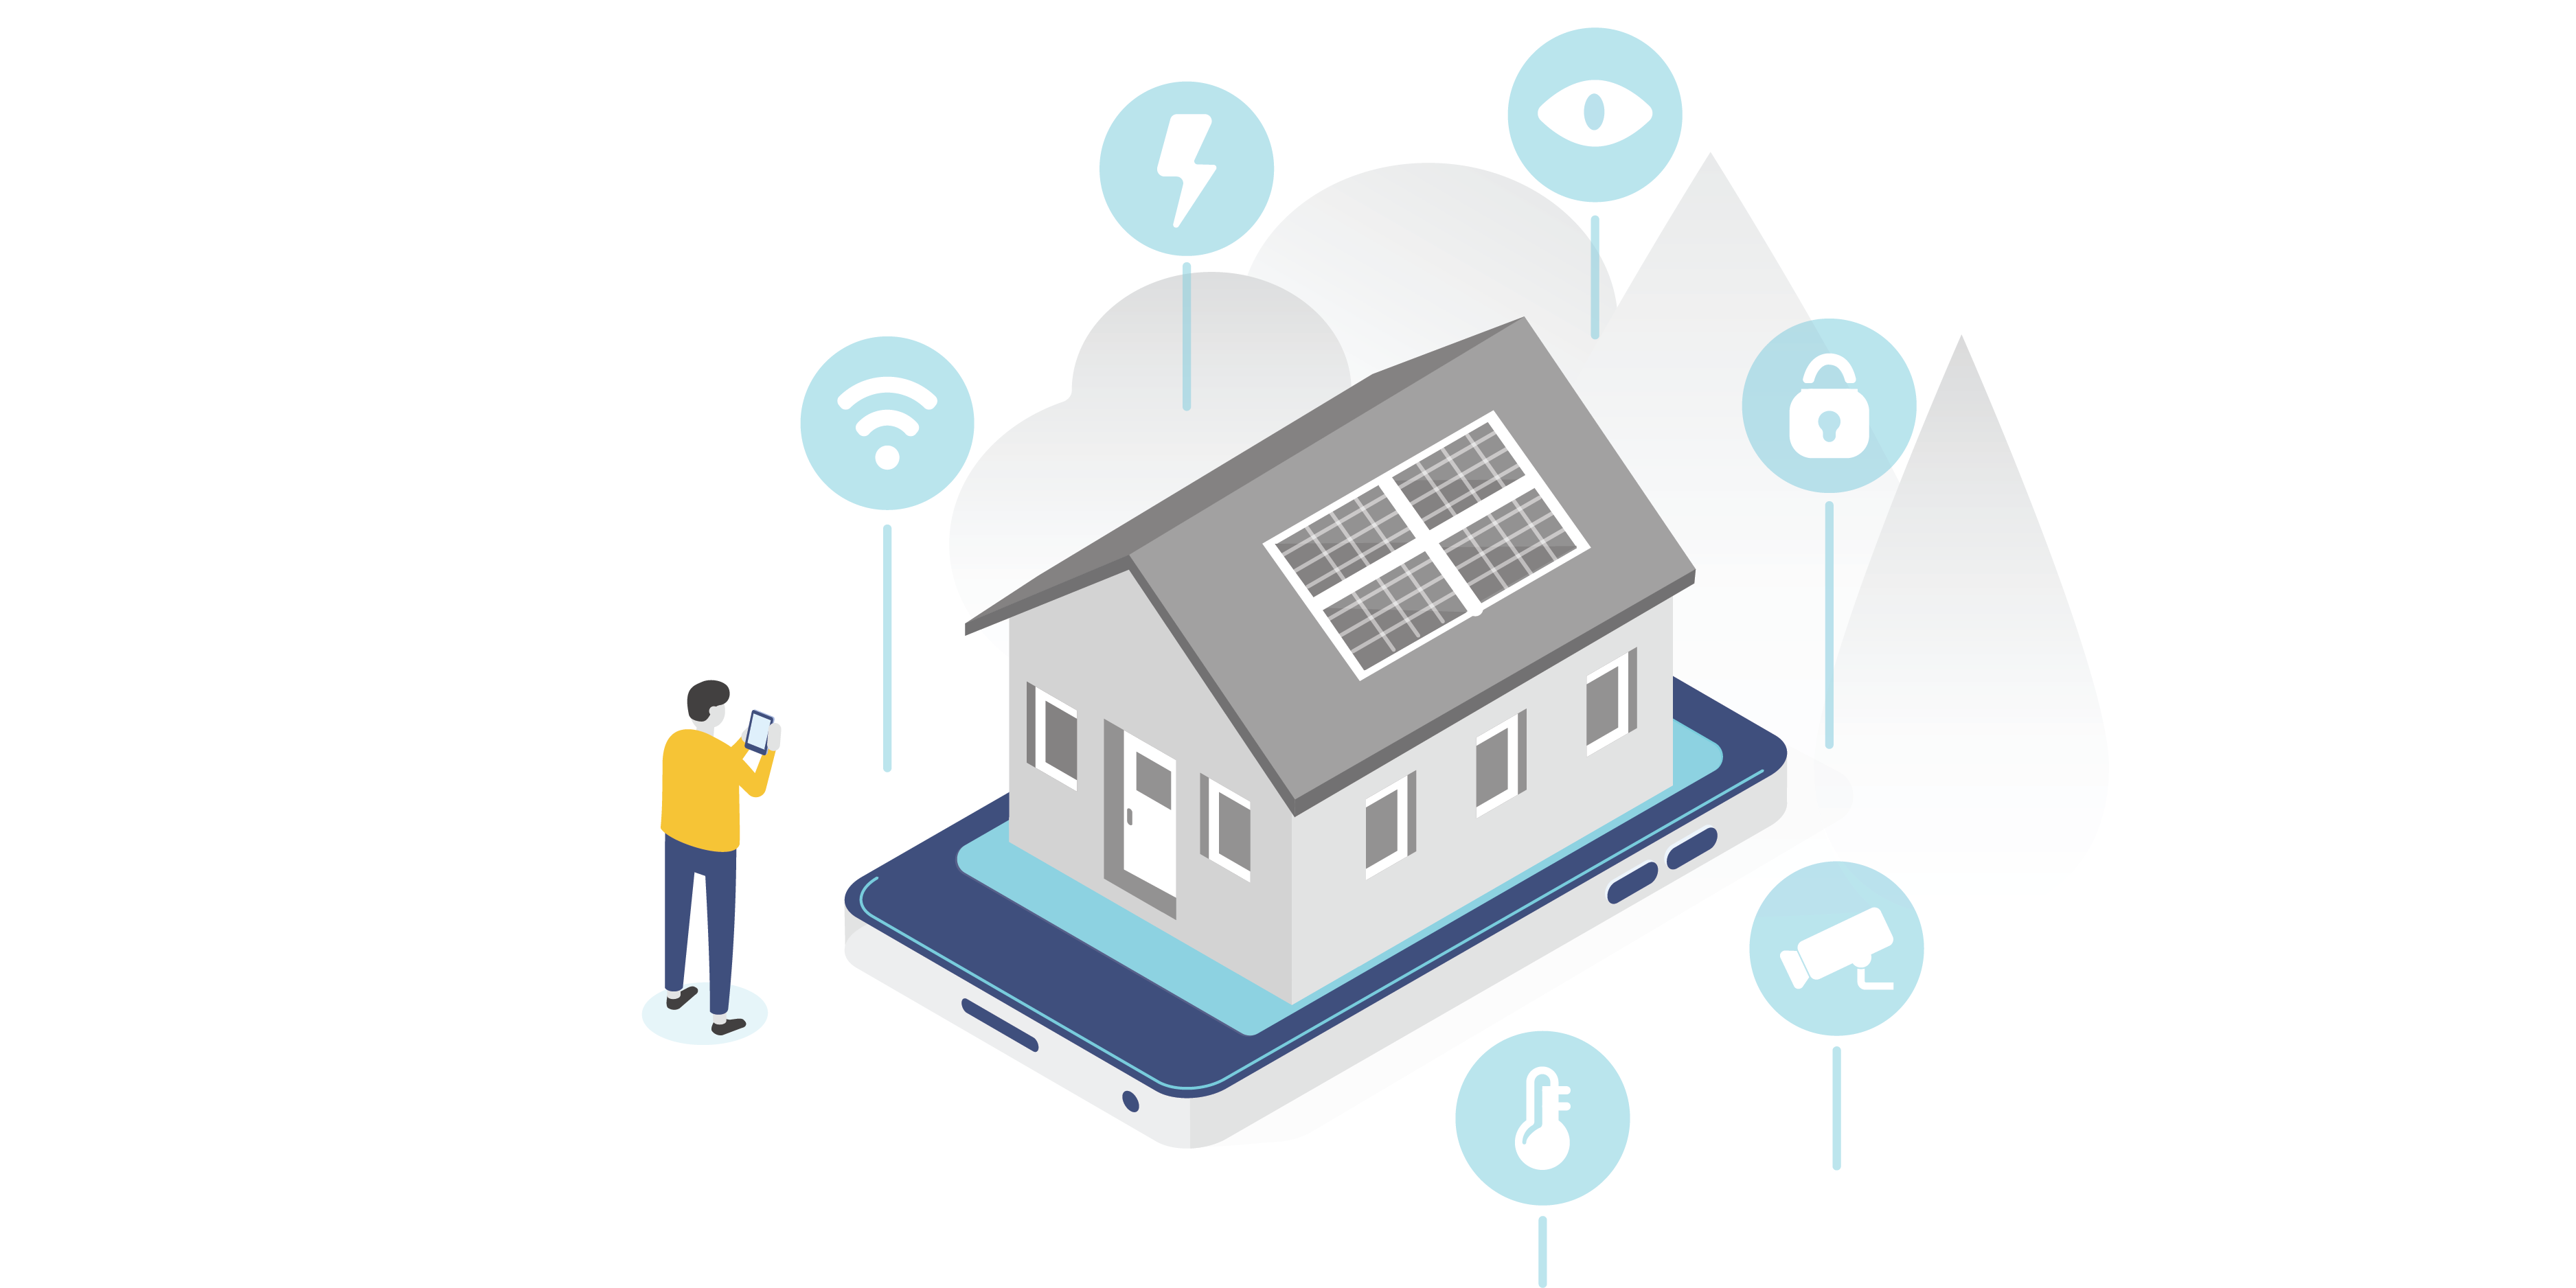 Graphic with a home on a mobile device to represent how smart homes can add protection